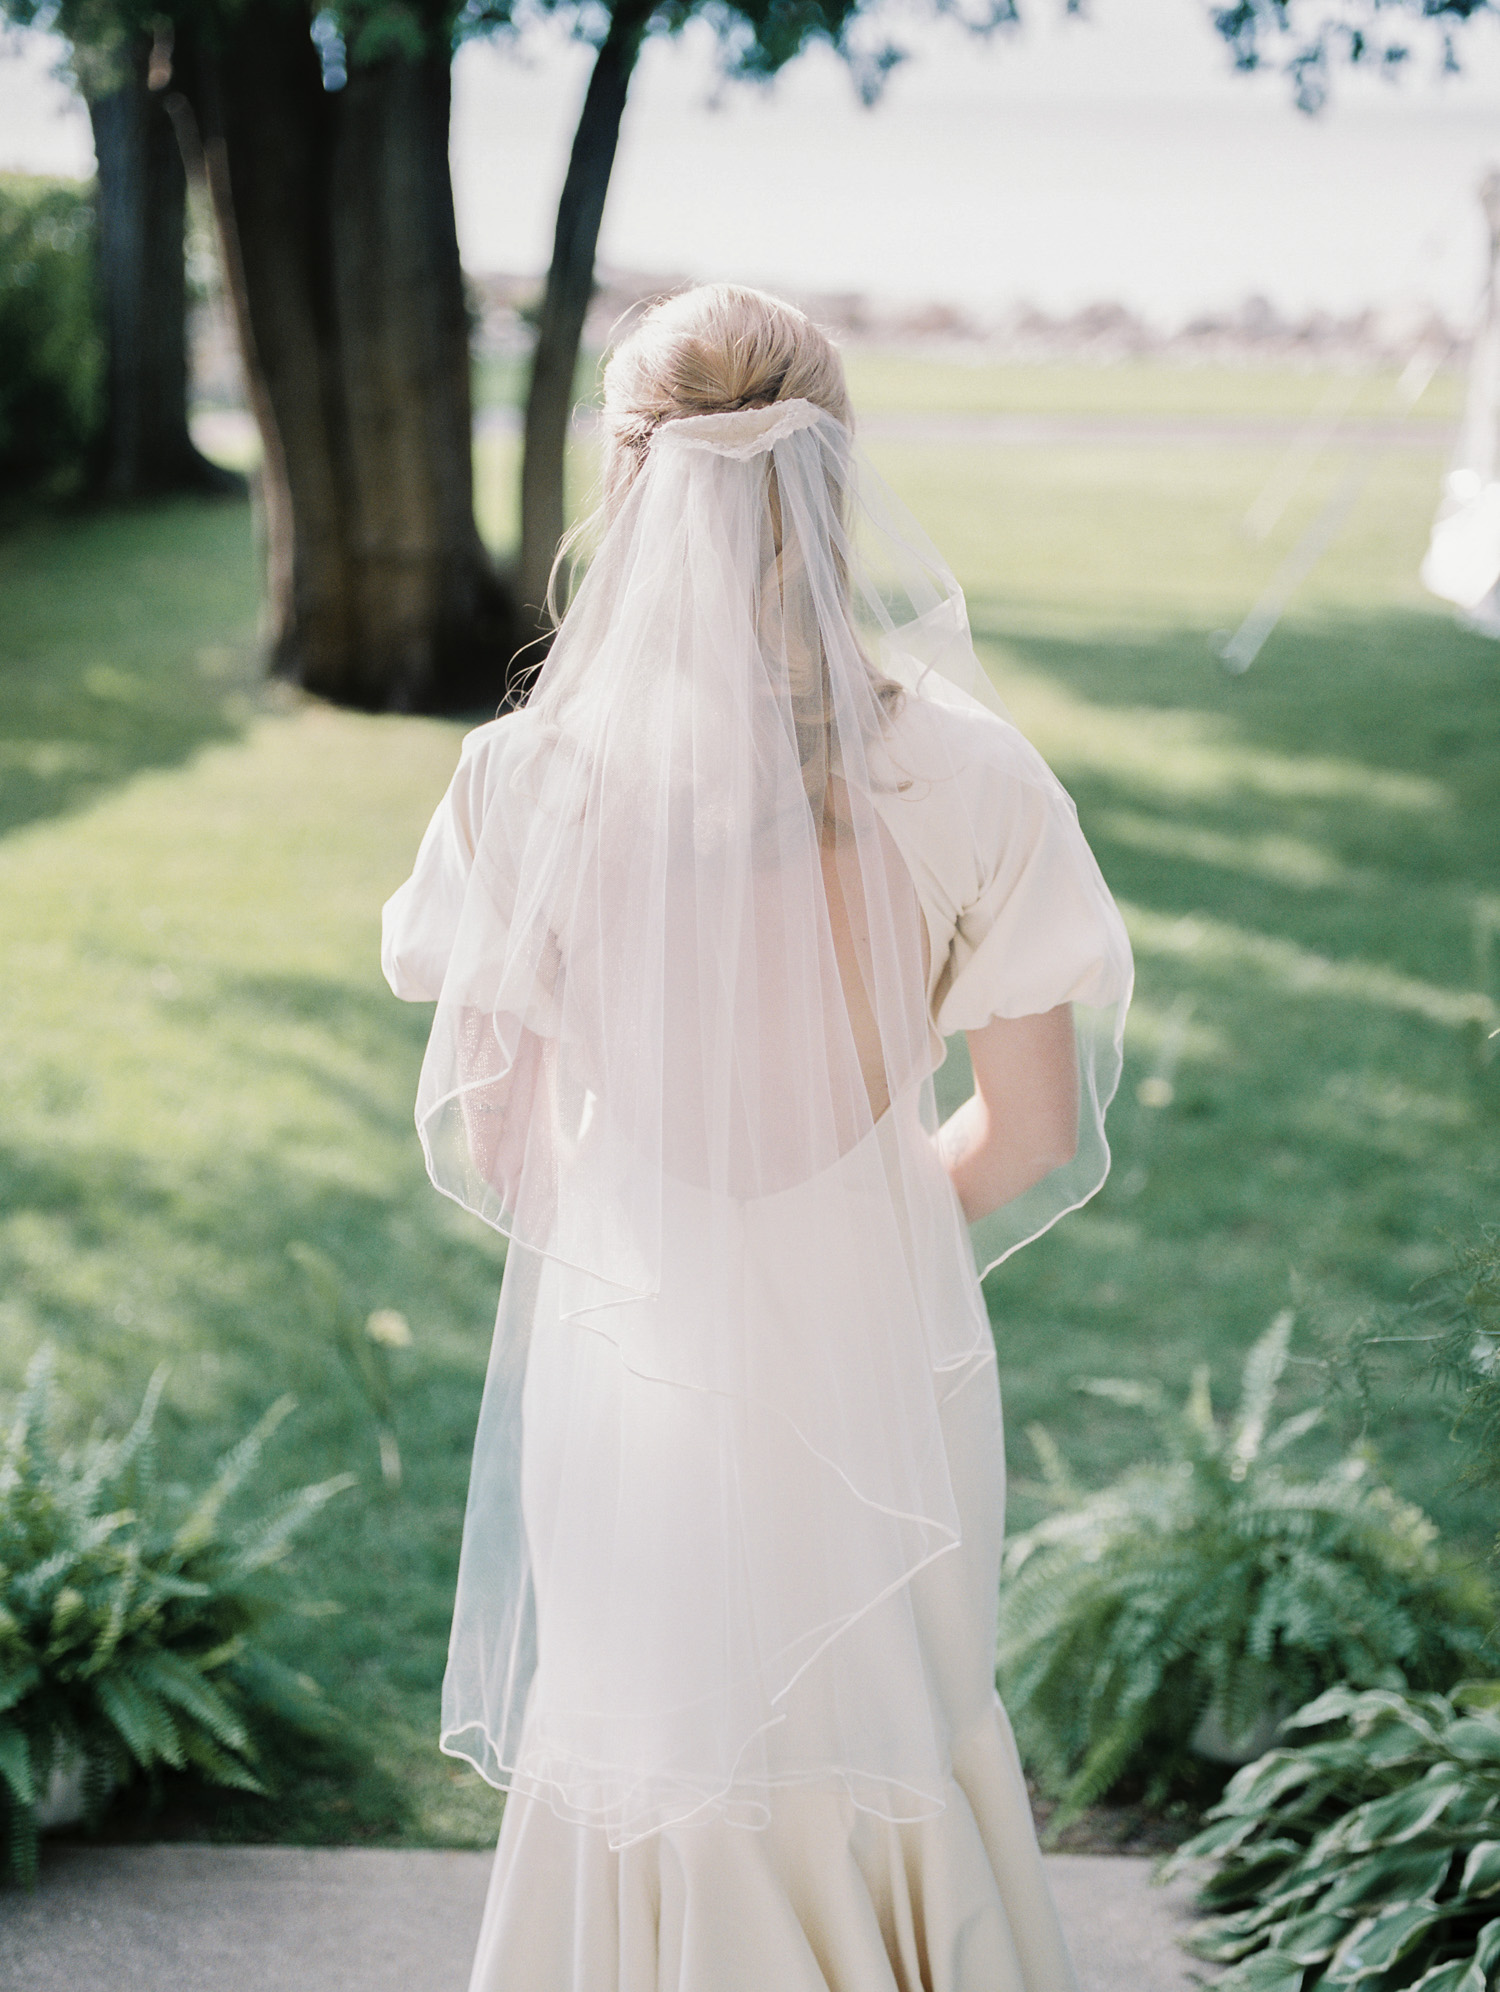 A bride in a fingertip length veil with the vintage sentimental detail of her grandmother's wedding dress in Petoskey, Michigan